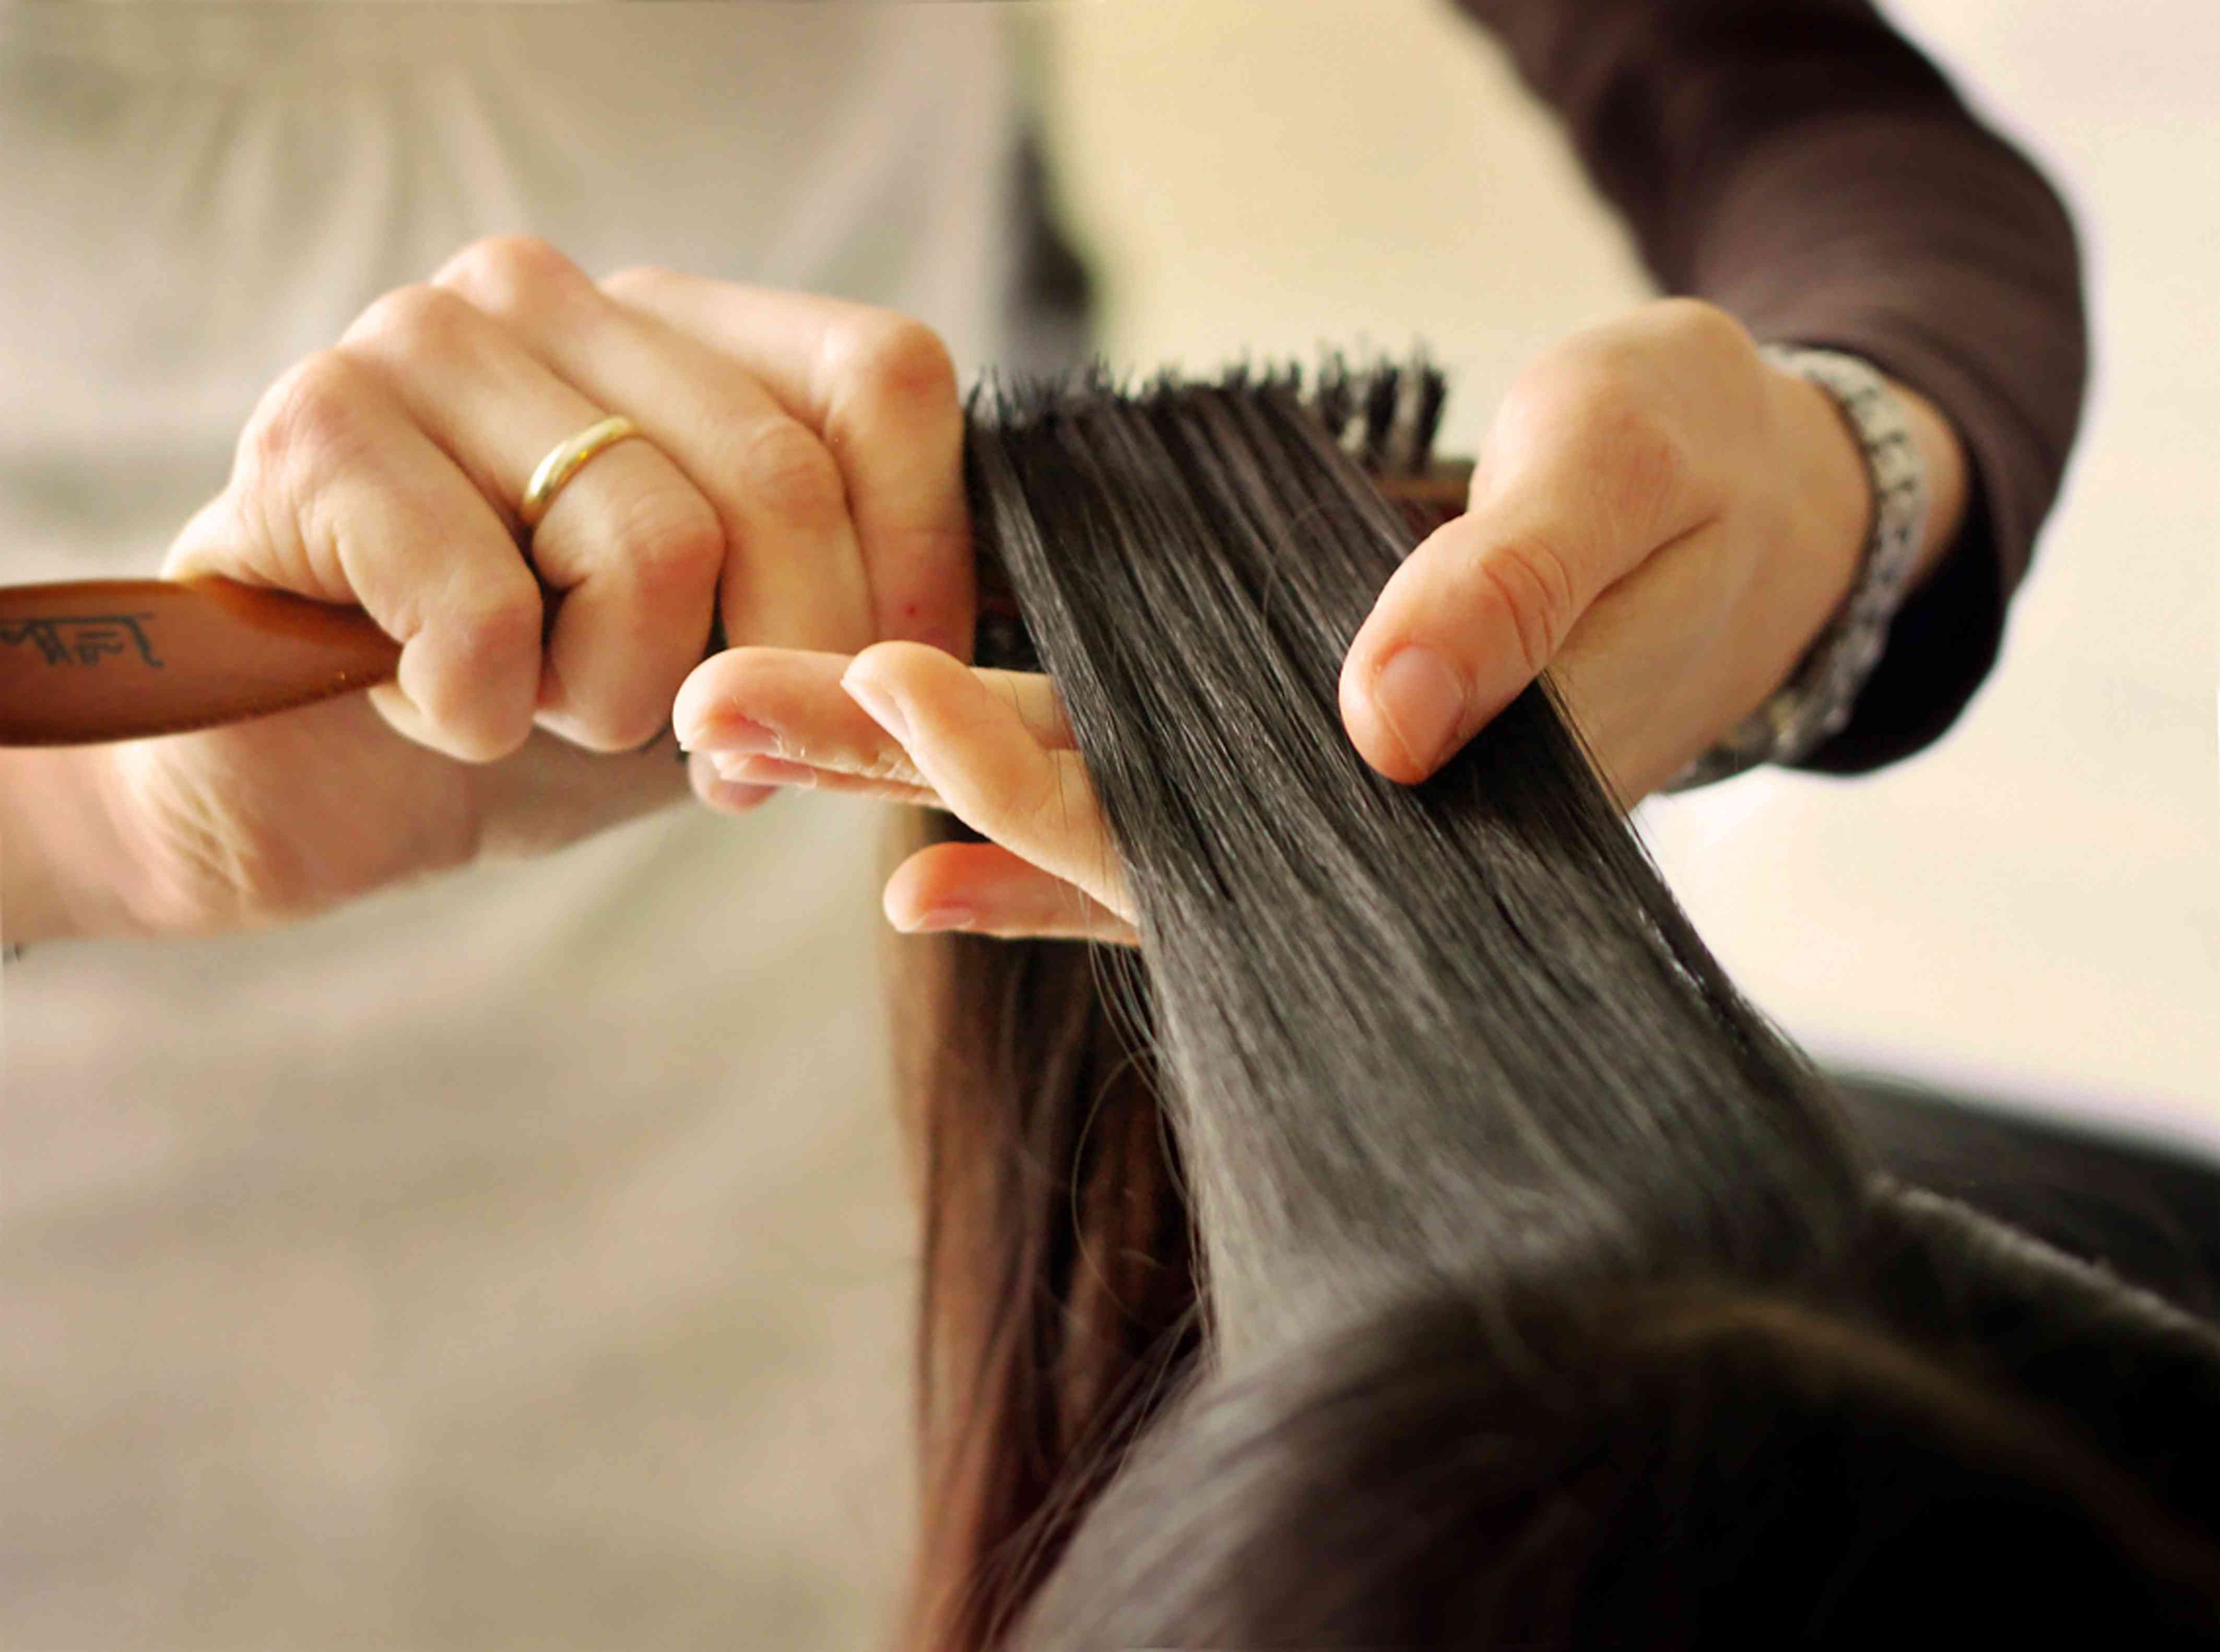 A woman getting castor oil combed into her hair